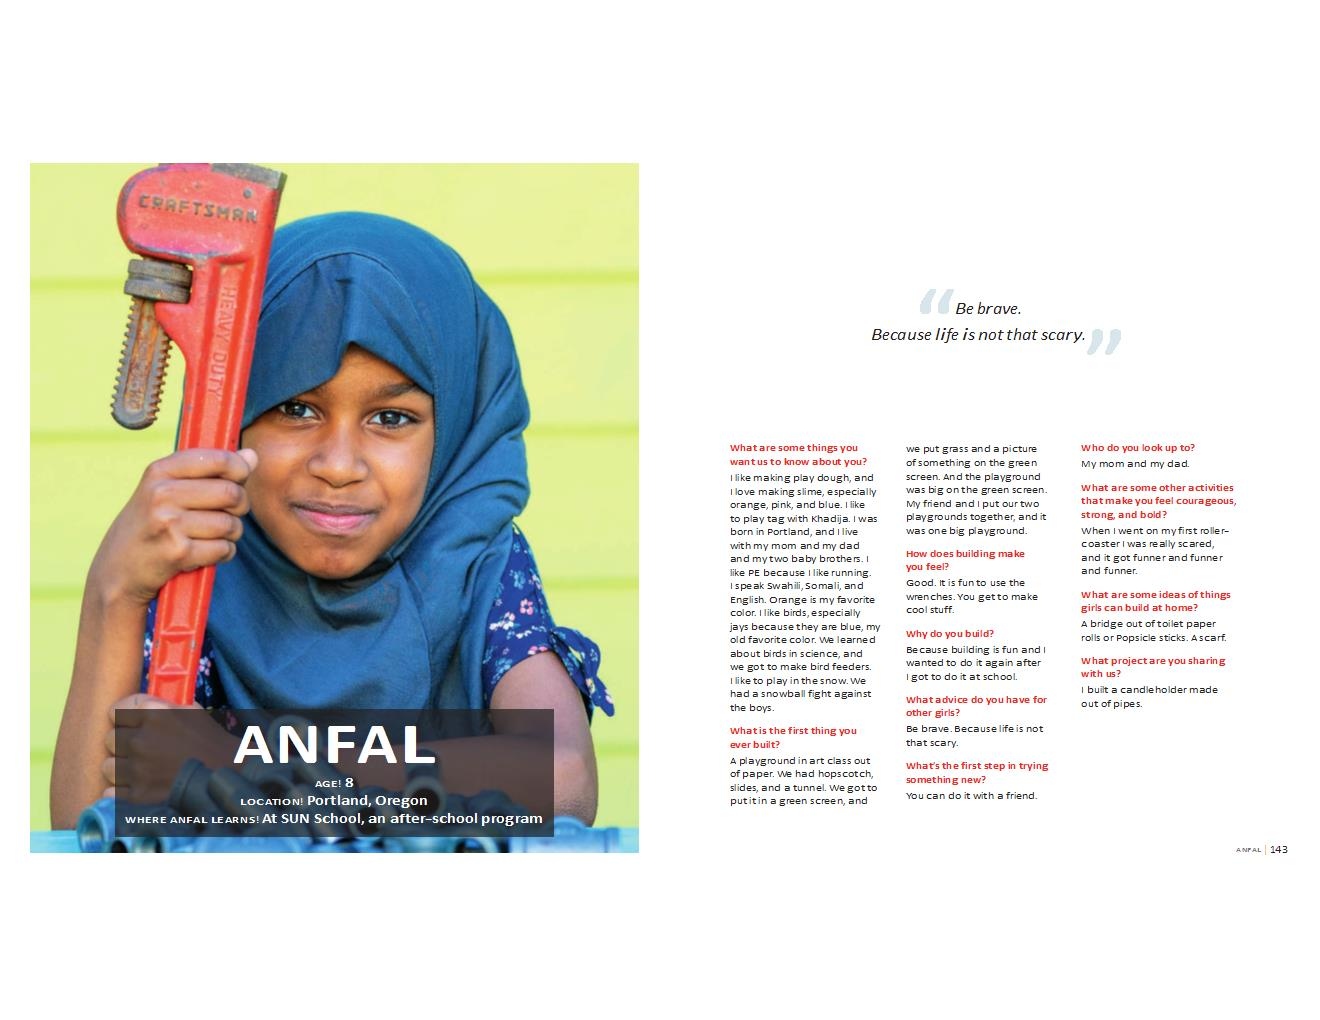 Anfal's profile / girls building